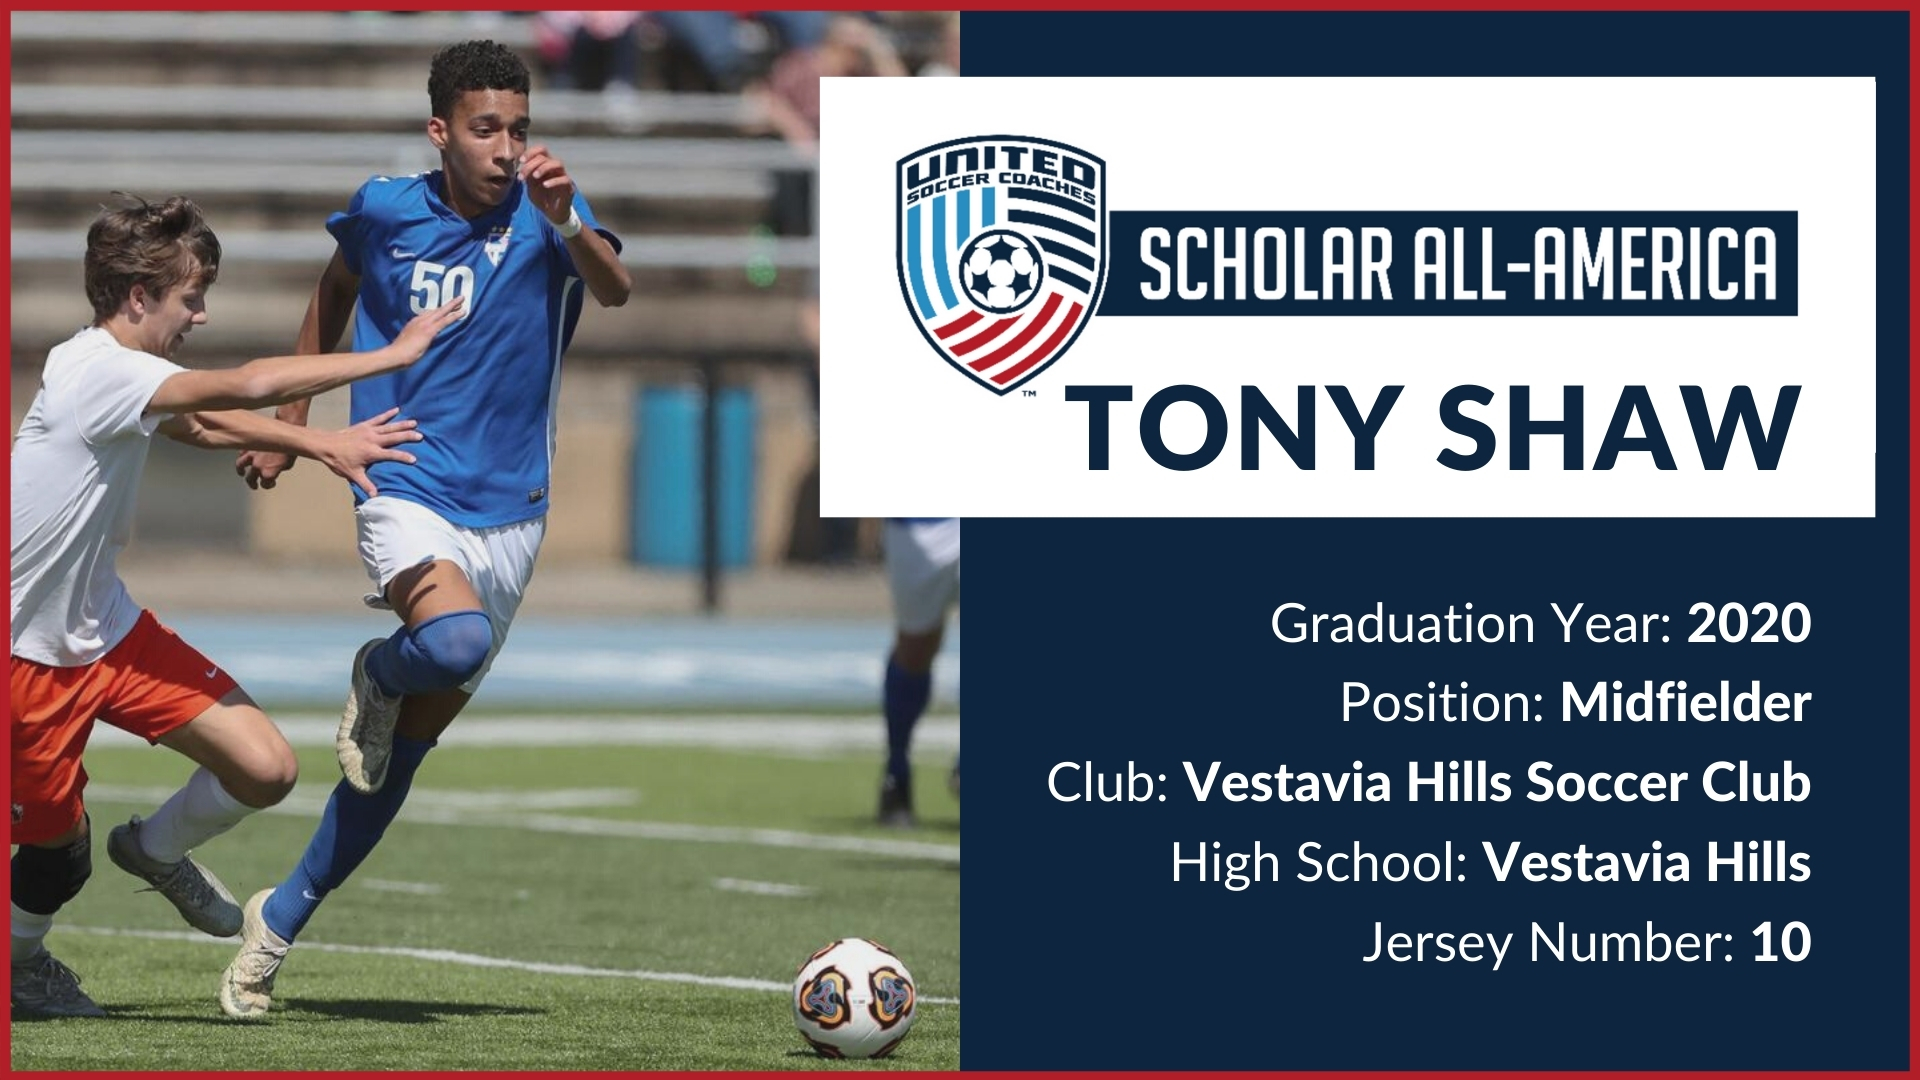 1920x1080 Tony Shaw USC Scholar All-America